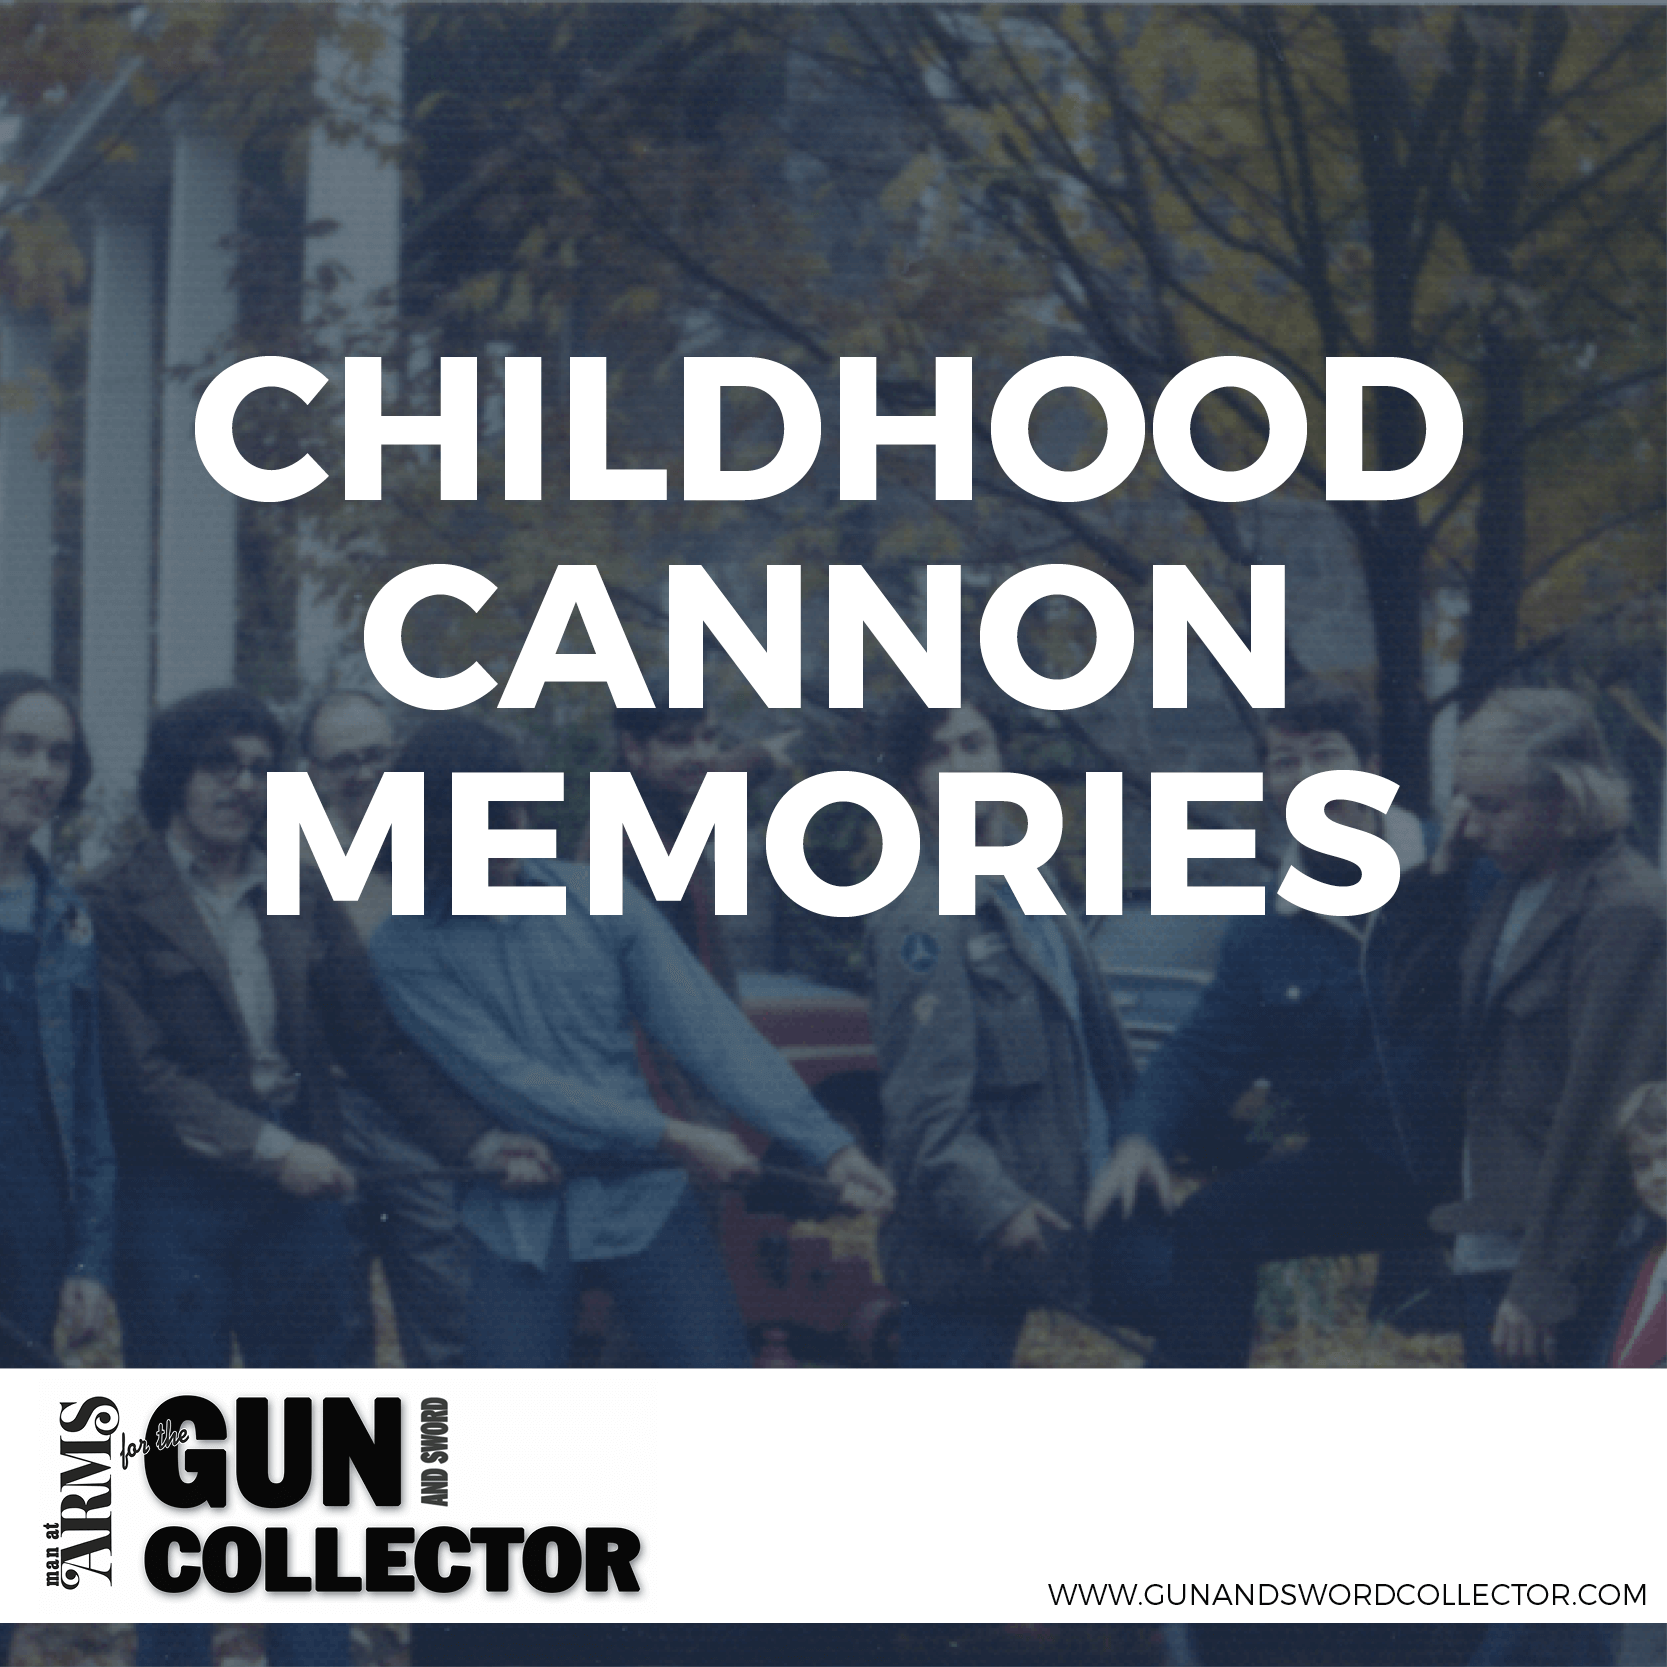 Childhood Cannon Memories